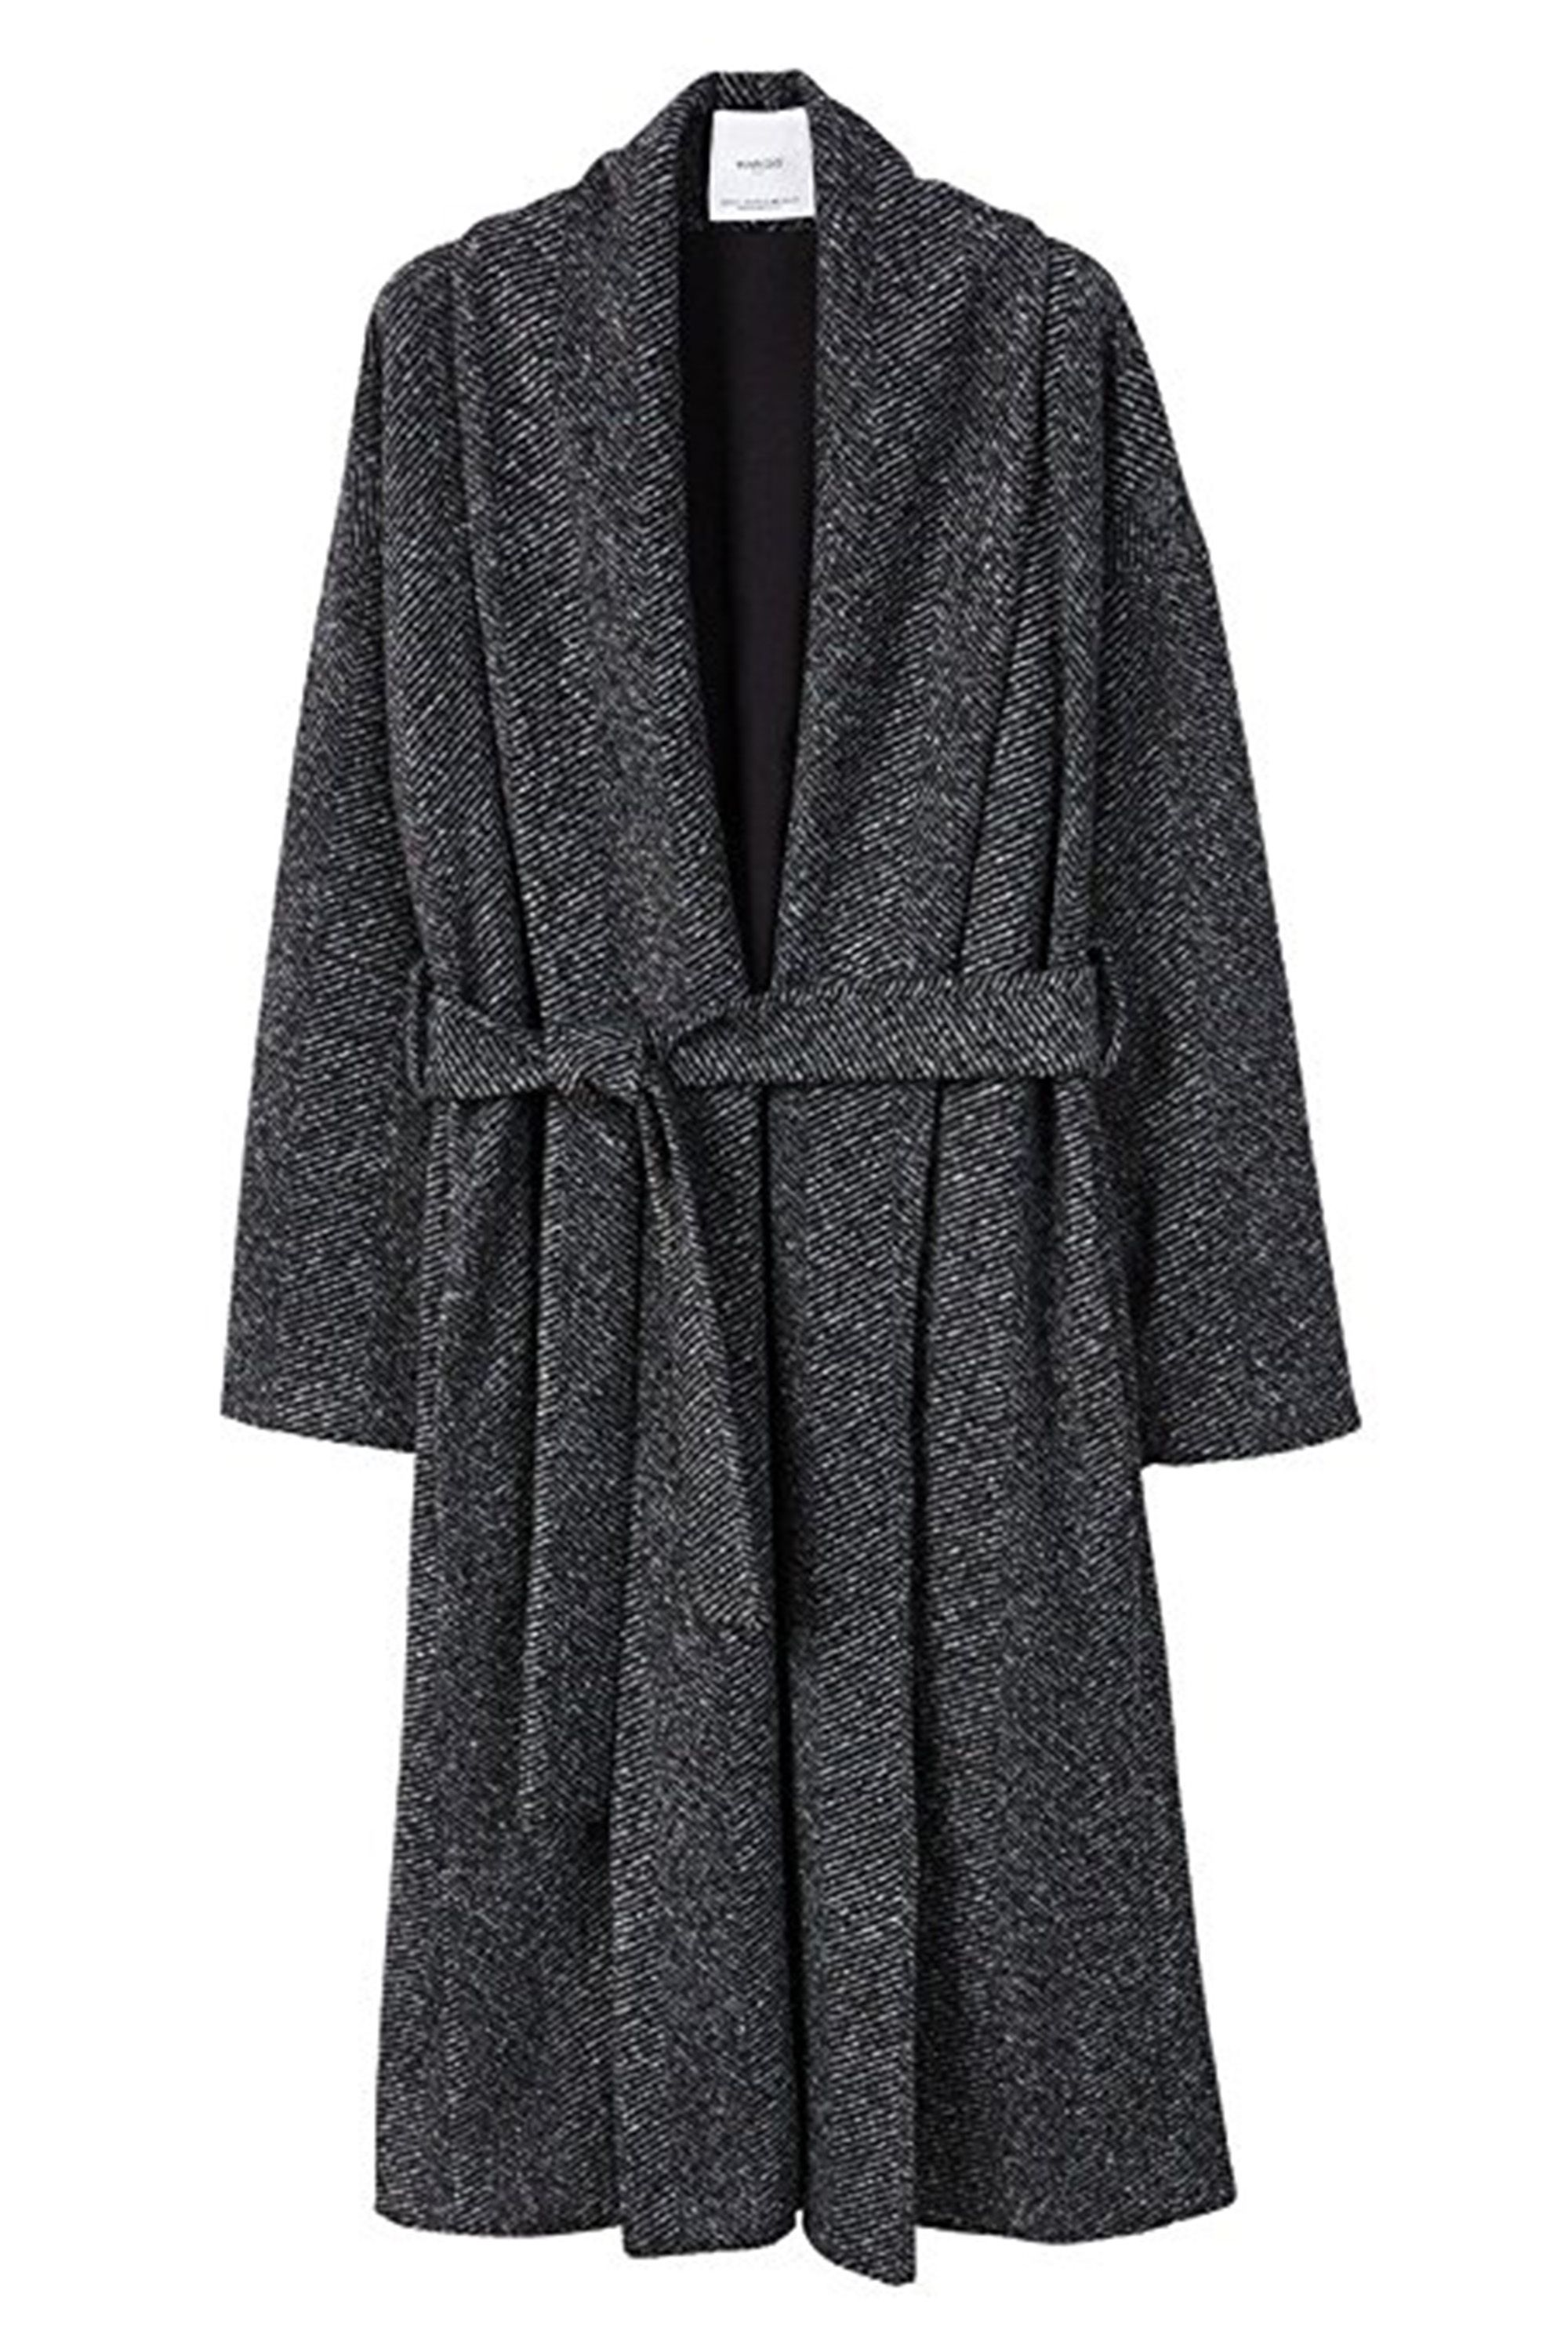 10 of the best dressing-gown coats to buy - inspired by Meghan Markle